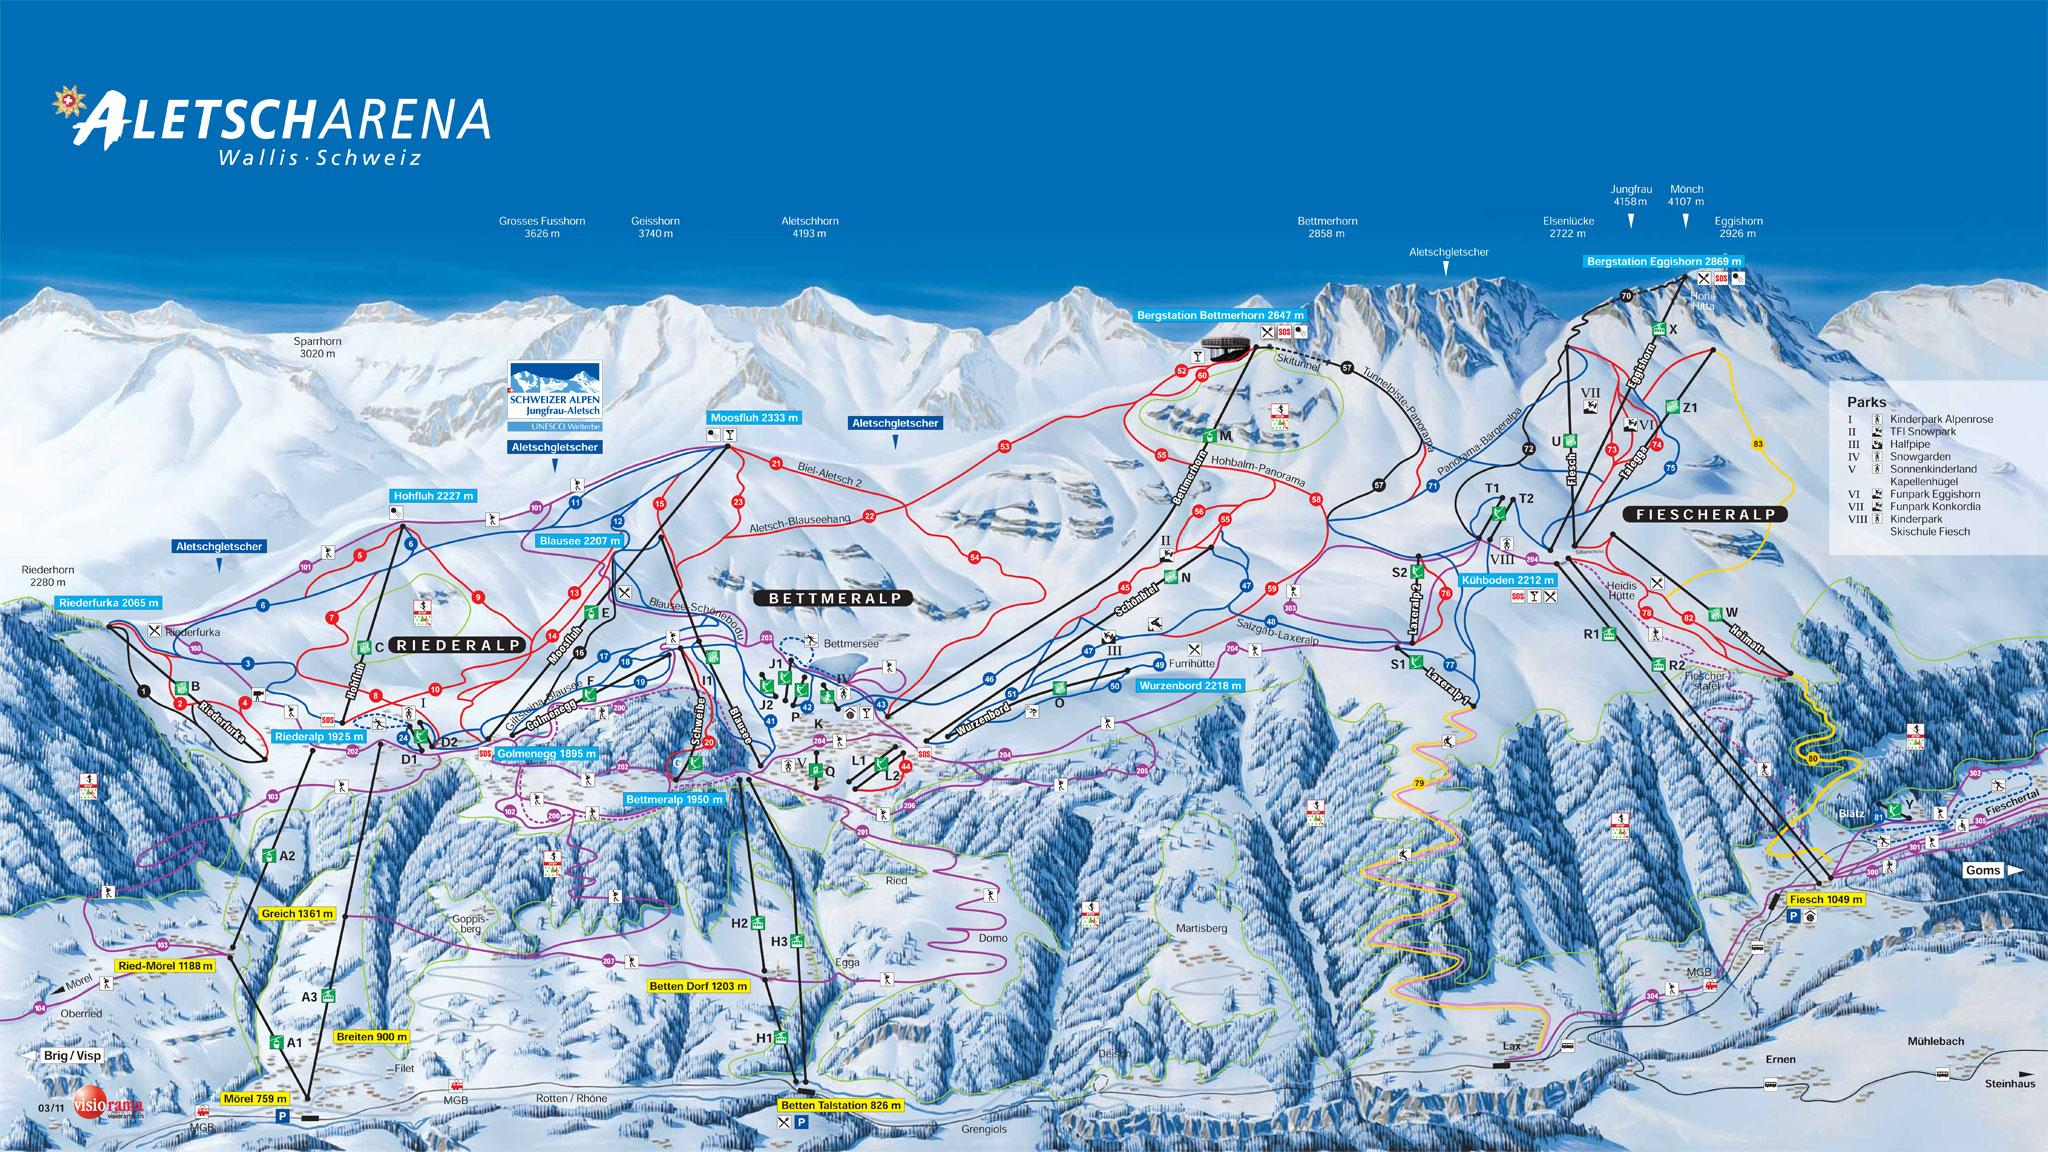 Bettmeralp Piste Map | J2Ski on austria ski map, grenoble ski map, cervinia trail map, innsbruck ski map, switzerland on world map, valle nevado ski map, alta ski map, verbier ski map, soelden ski map, leysin ski map, new england ski map, hintertux ski map, switzerland on europe map, chamonix ski map, titlis ski map, torgon ski map, zugspitze ski map, matterhorn switzerland map, grindelwald ski map, tyrol ski map,